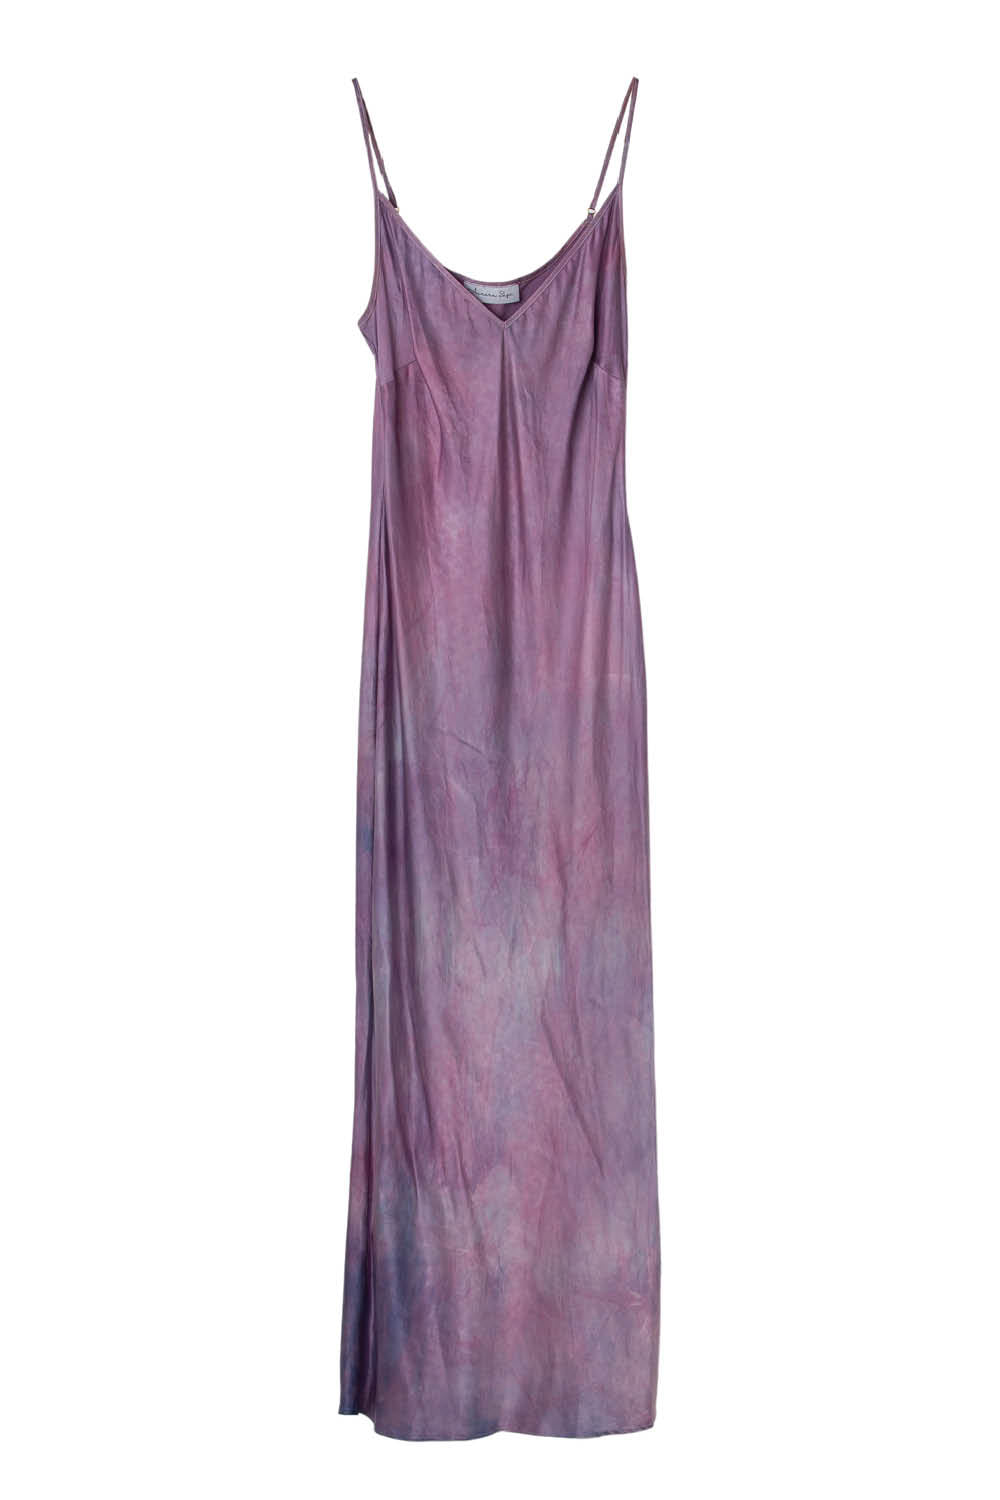 Aphrodite Midi Dress in Magenta Haze